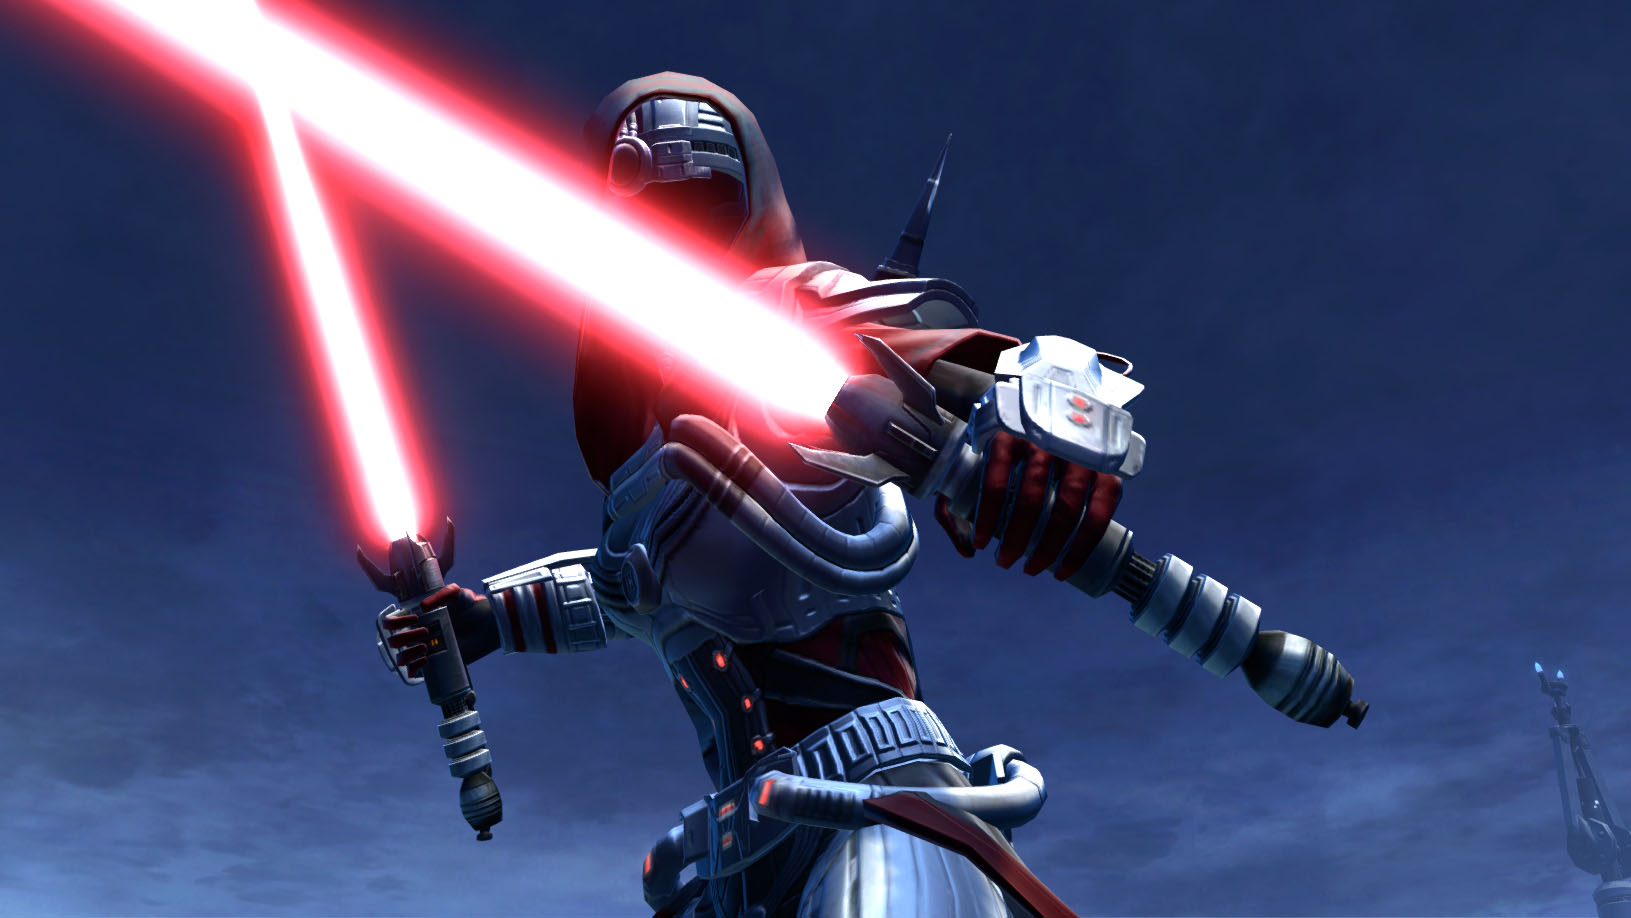 Craftable Lightsabers - Swtorista on swtor companion gifts, swtor schematics guide, swtor get rich, swtor hk-51 customization, swtor sith warrior, swtor skill diagram, swtor jedi consular,